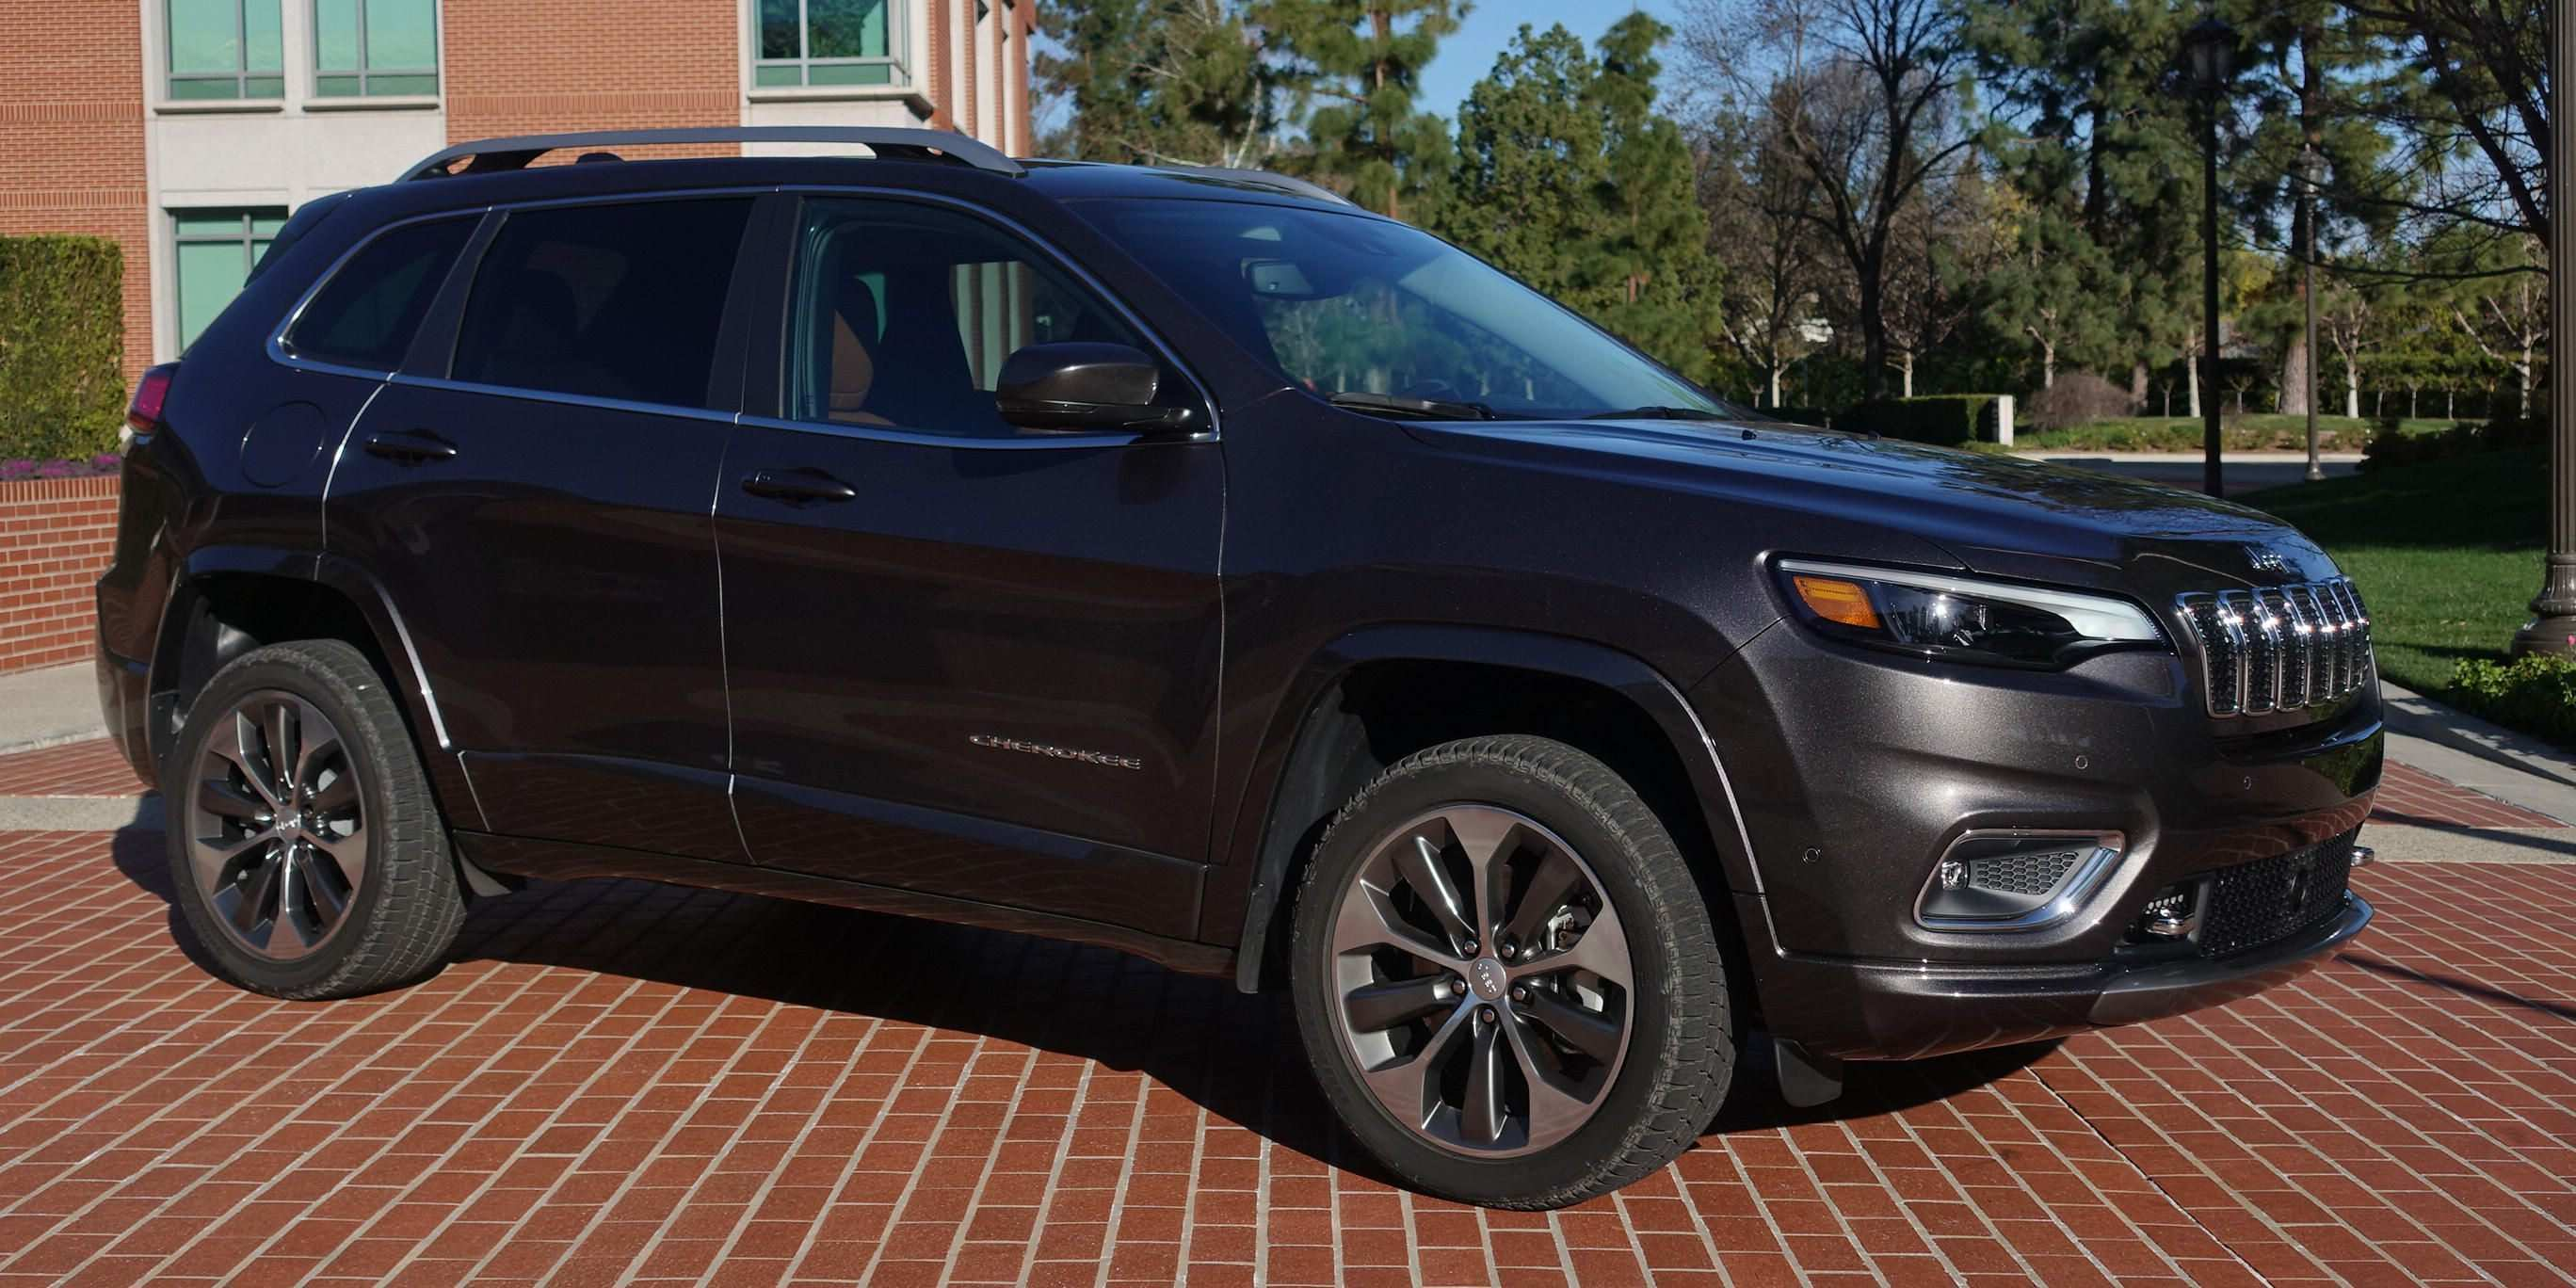 29 All New New 2019 Jeep Cherokee Horsepower Release Specs And Review Specs by New 2019 Jeep Cherokee Horsepower Release Specs And Review